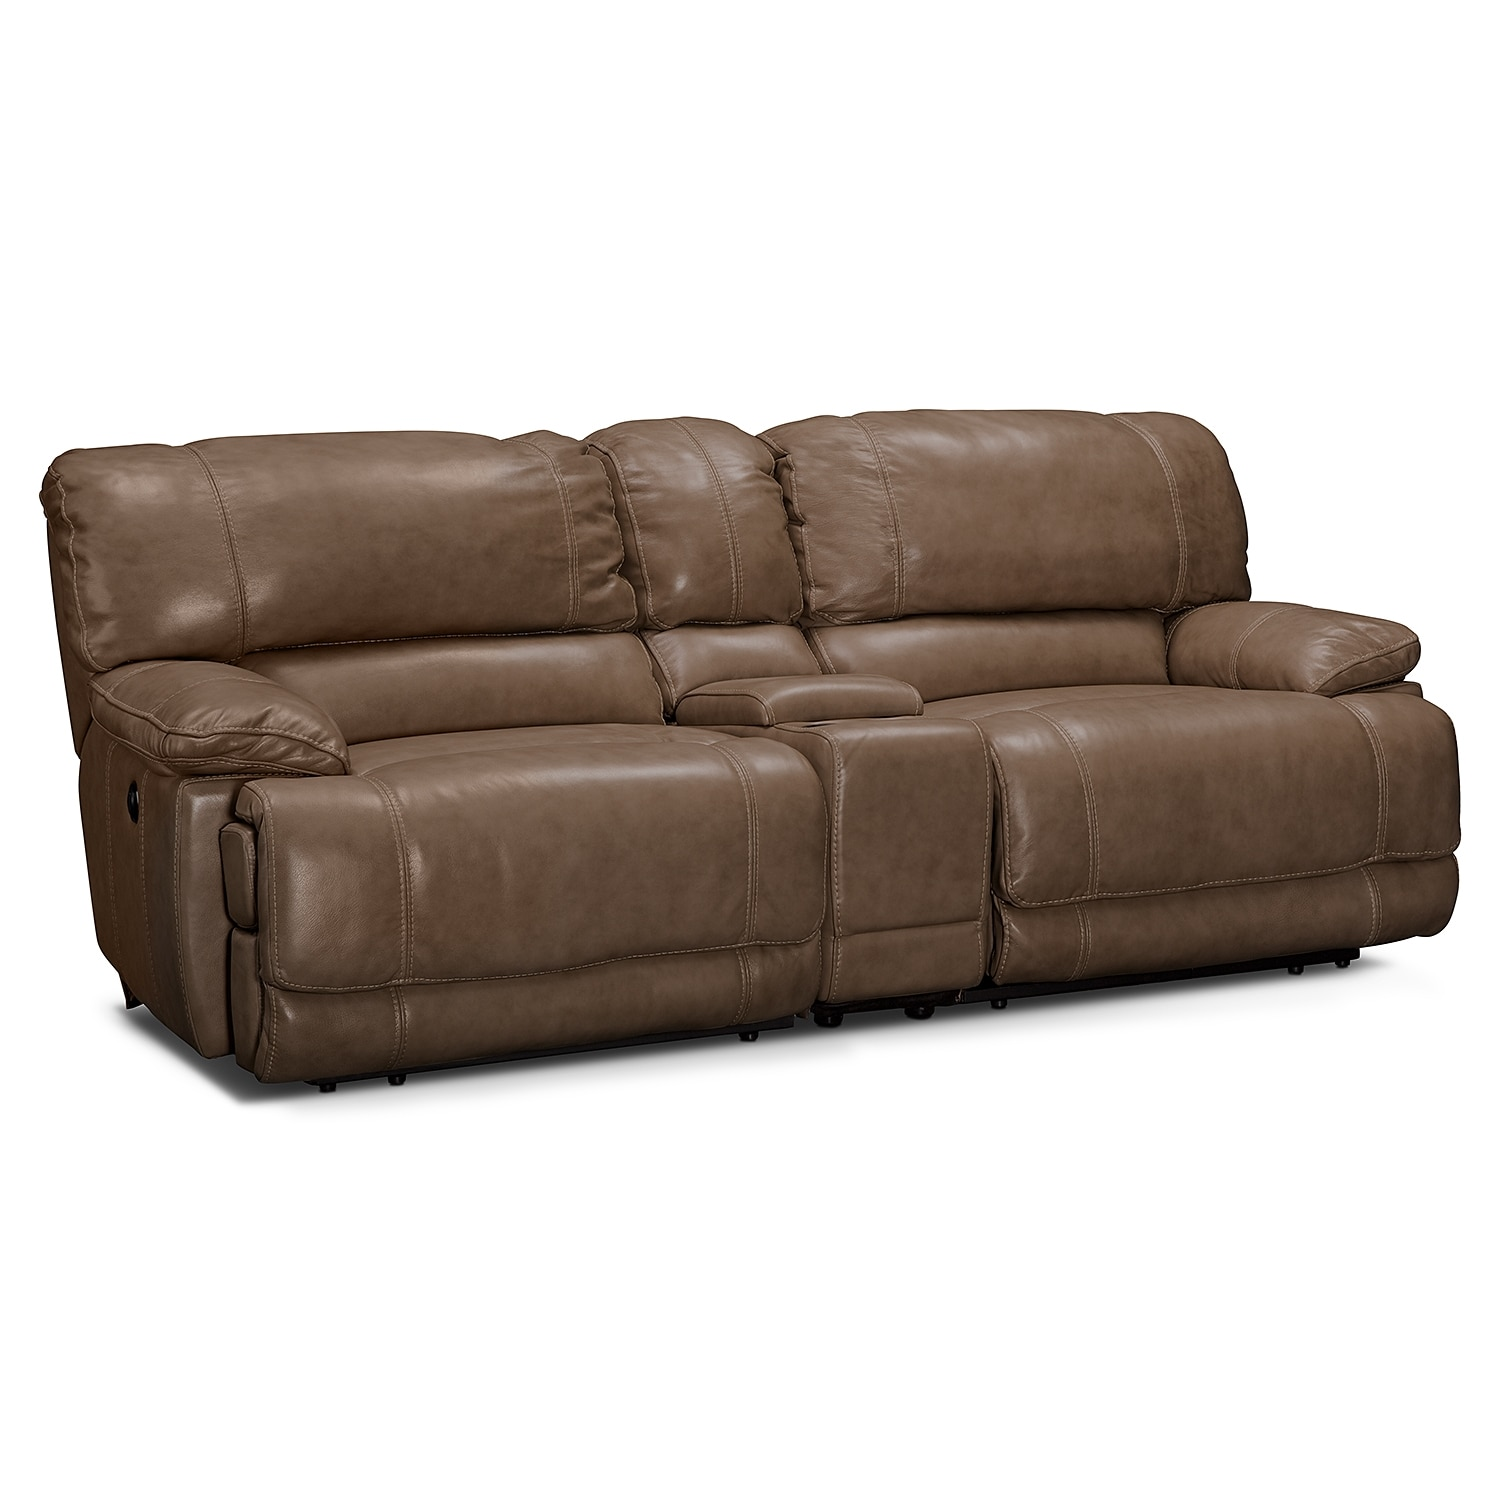 St. Malo Power Reclining Sofa With Console   Taupe